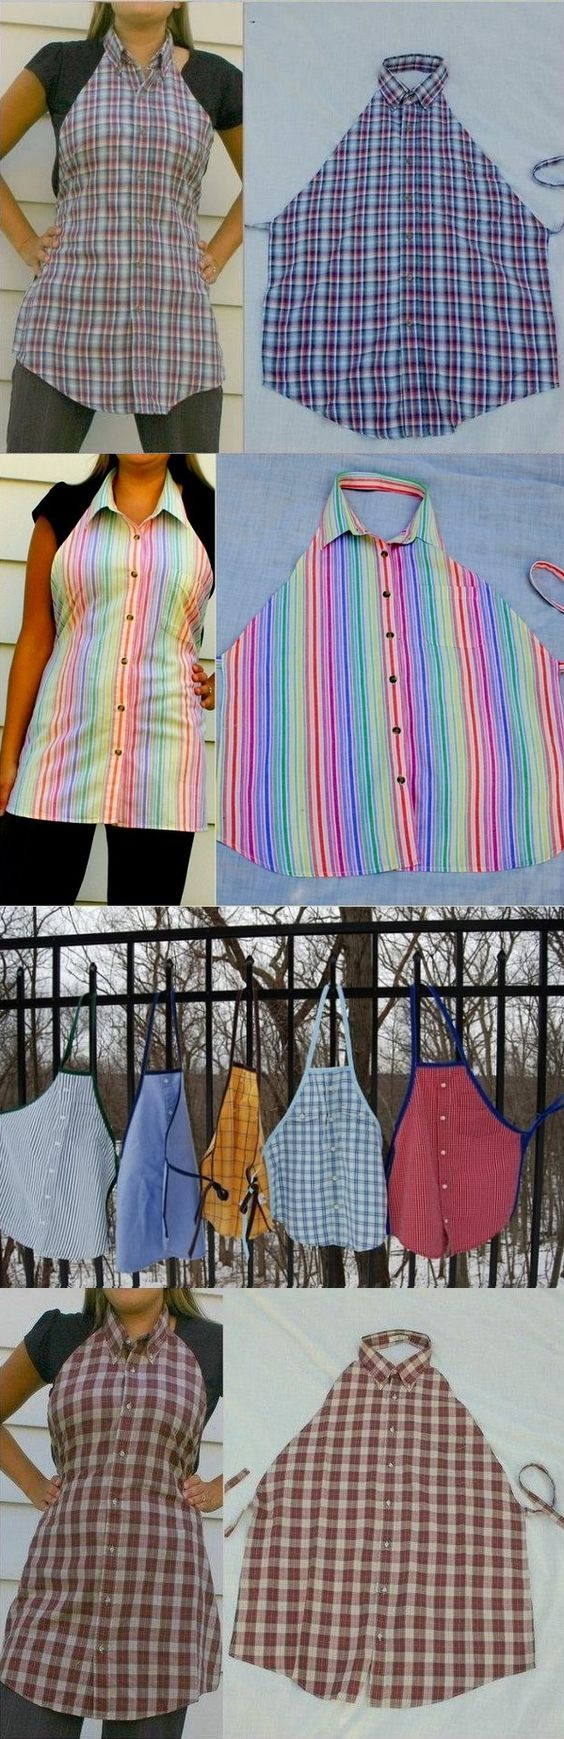 Turn Your Old Shirt into a Fancy Looking Apron � DIY: